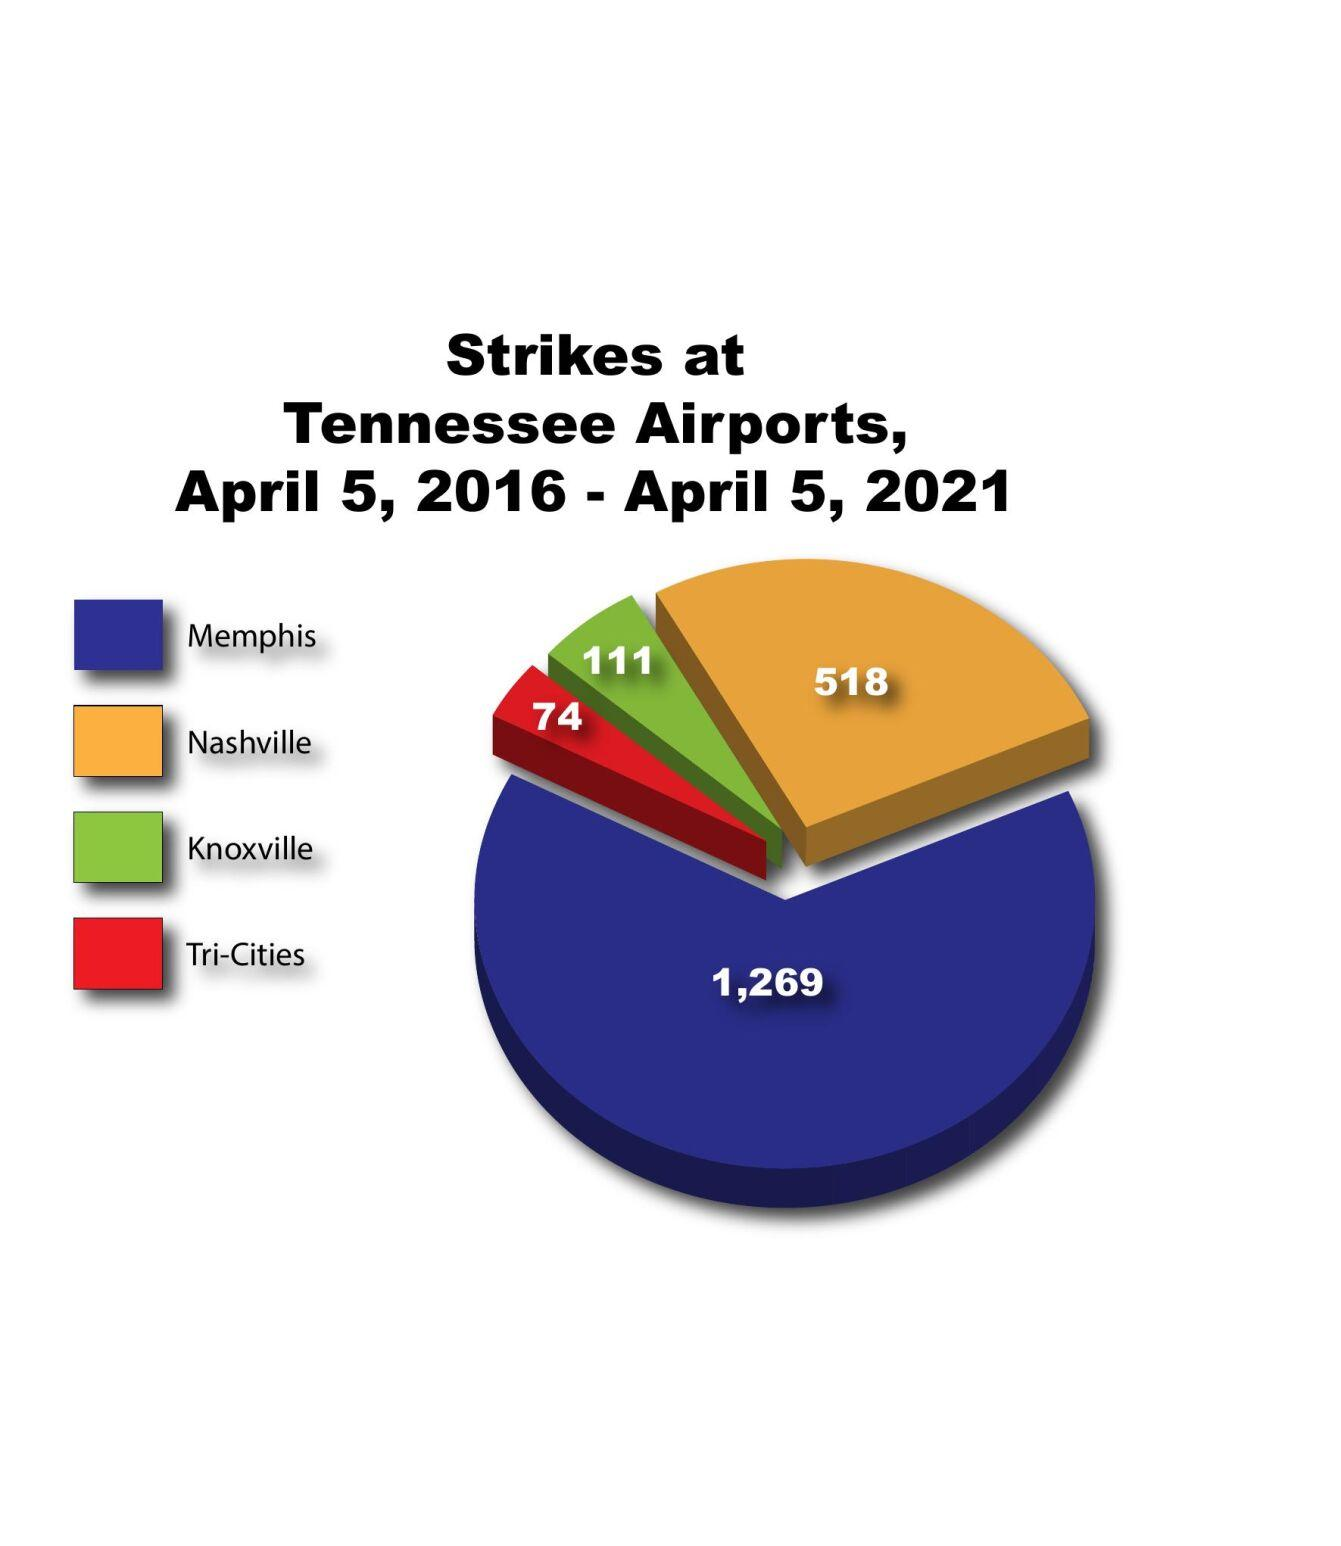 Strikes at Tennessee Airports FINAL.pdf